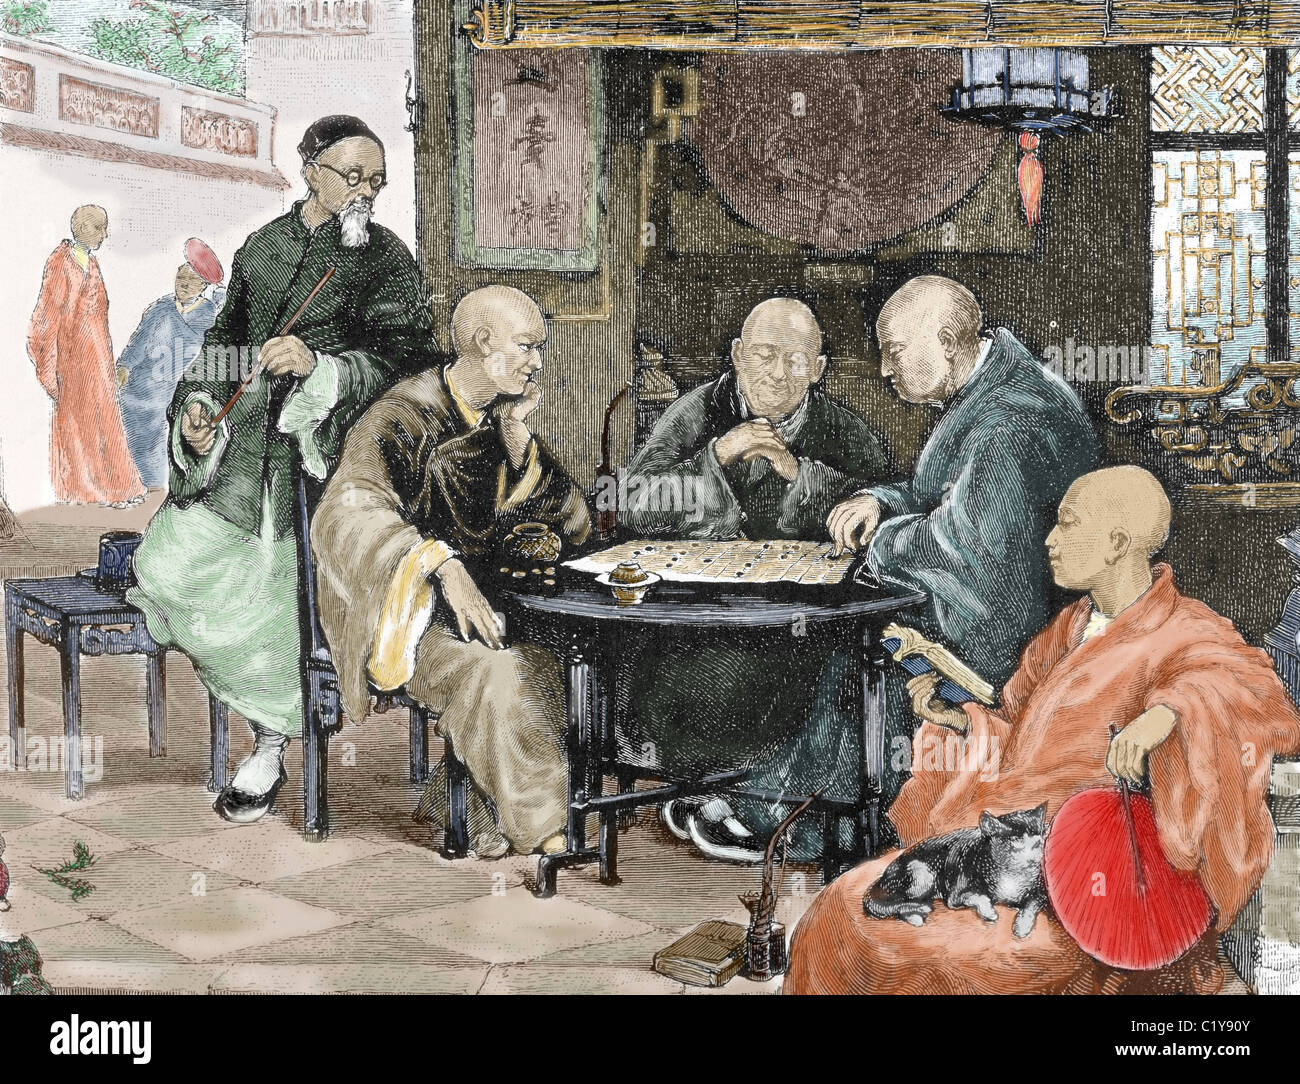 China. Men playing draughts in a tavern. Nineteenth-century colored engraving. Stock Photo